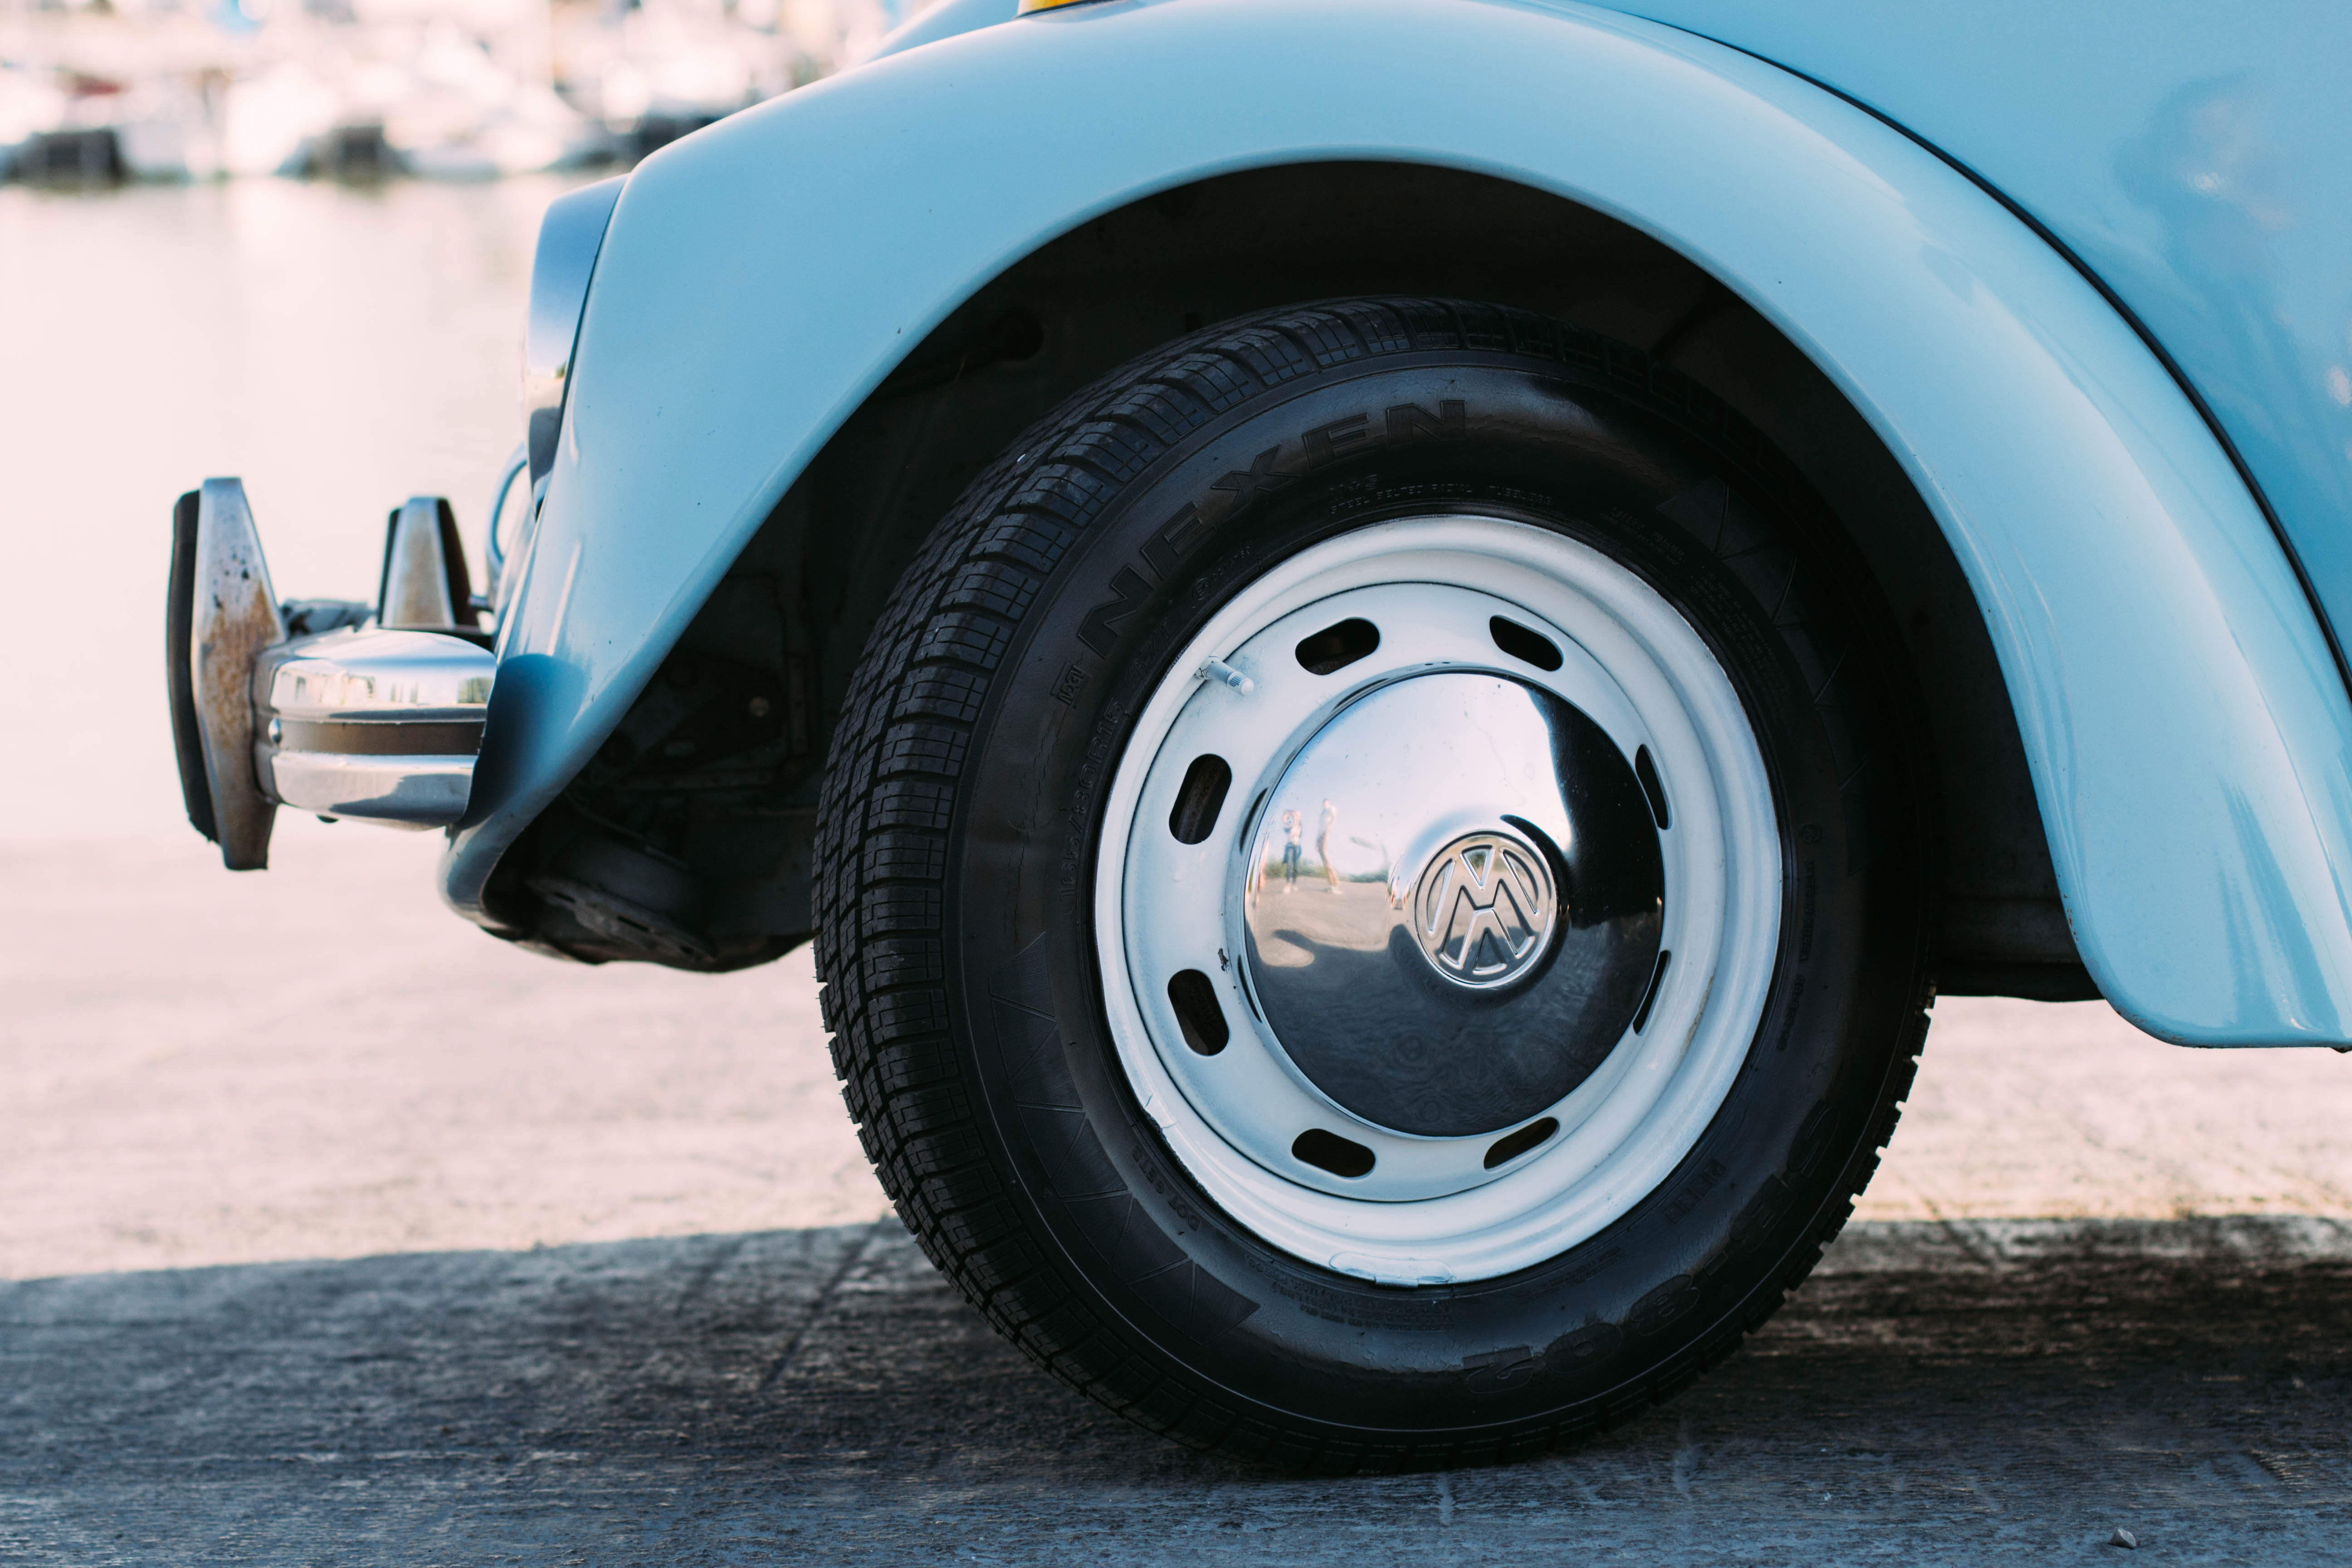 Front of Volkswagen blue car with logo on hubcap